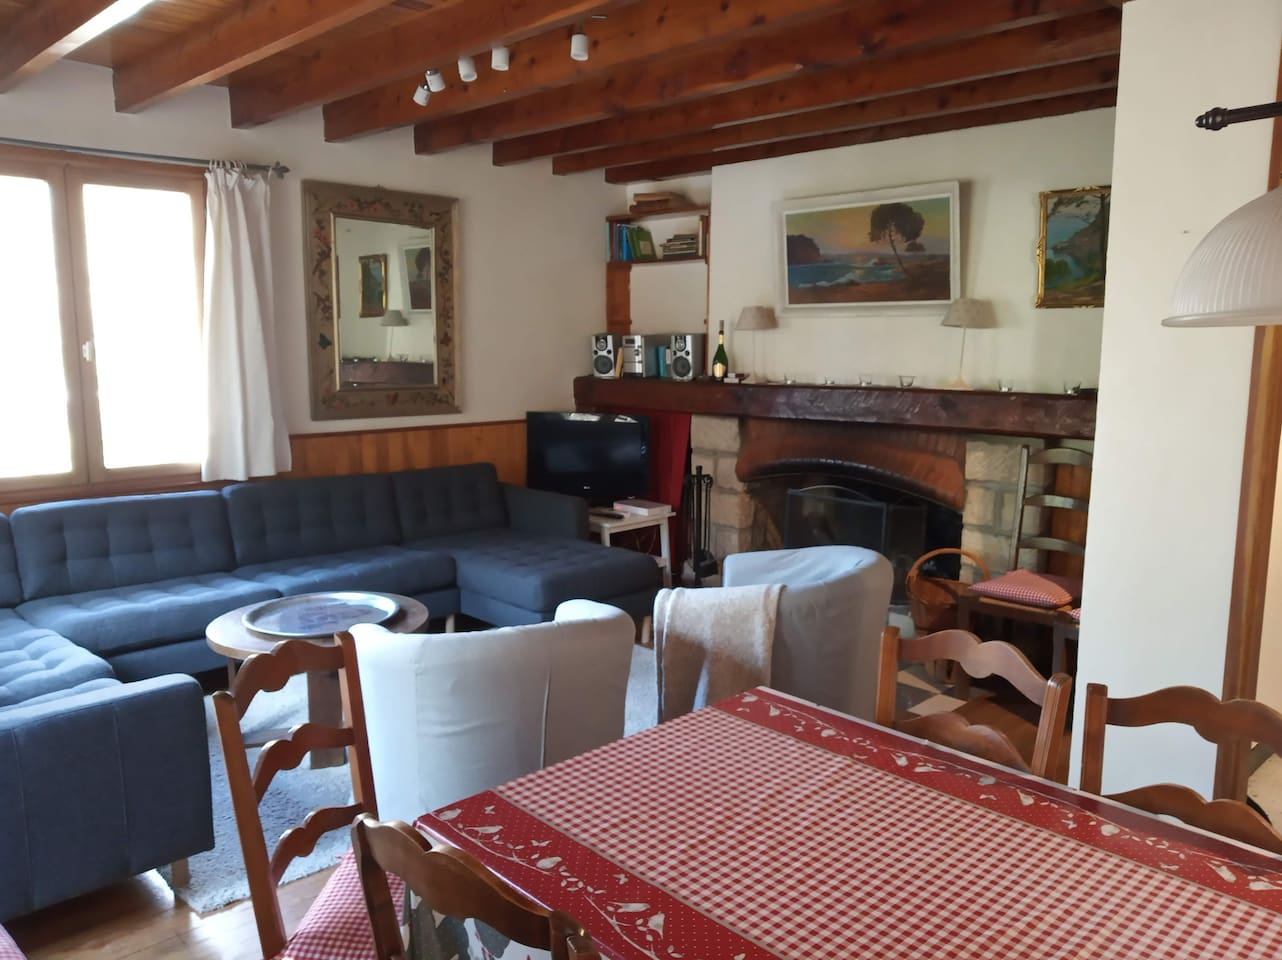 Provence Cheminée Six Fours chalet brunel: 6 bedroom 4* haut verdon retreat - chalets